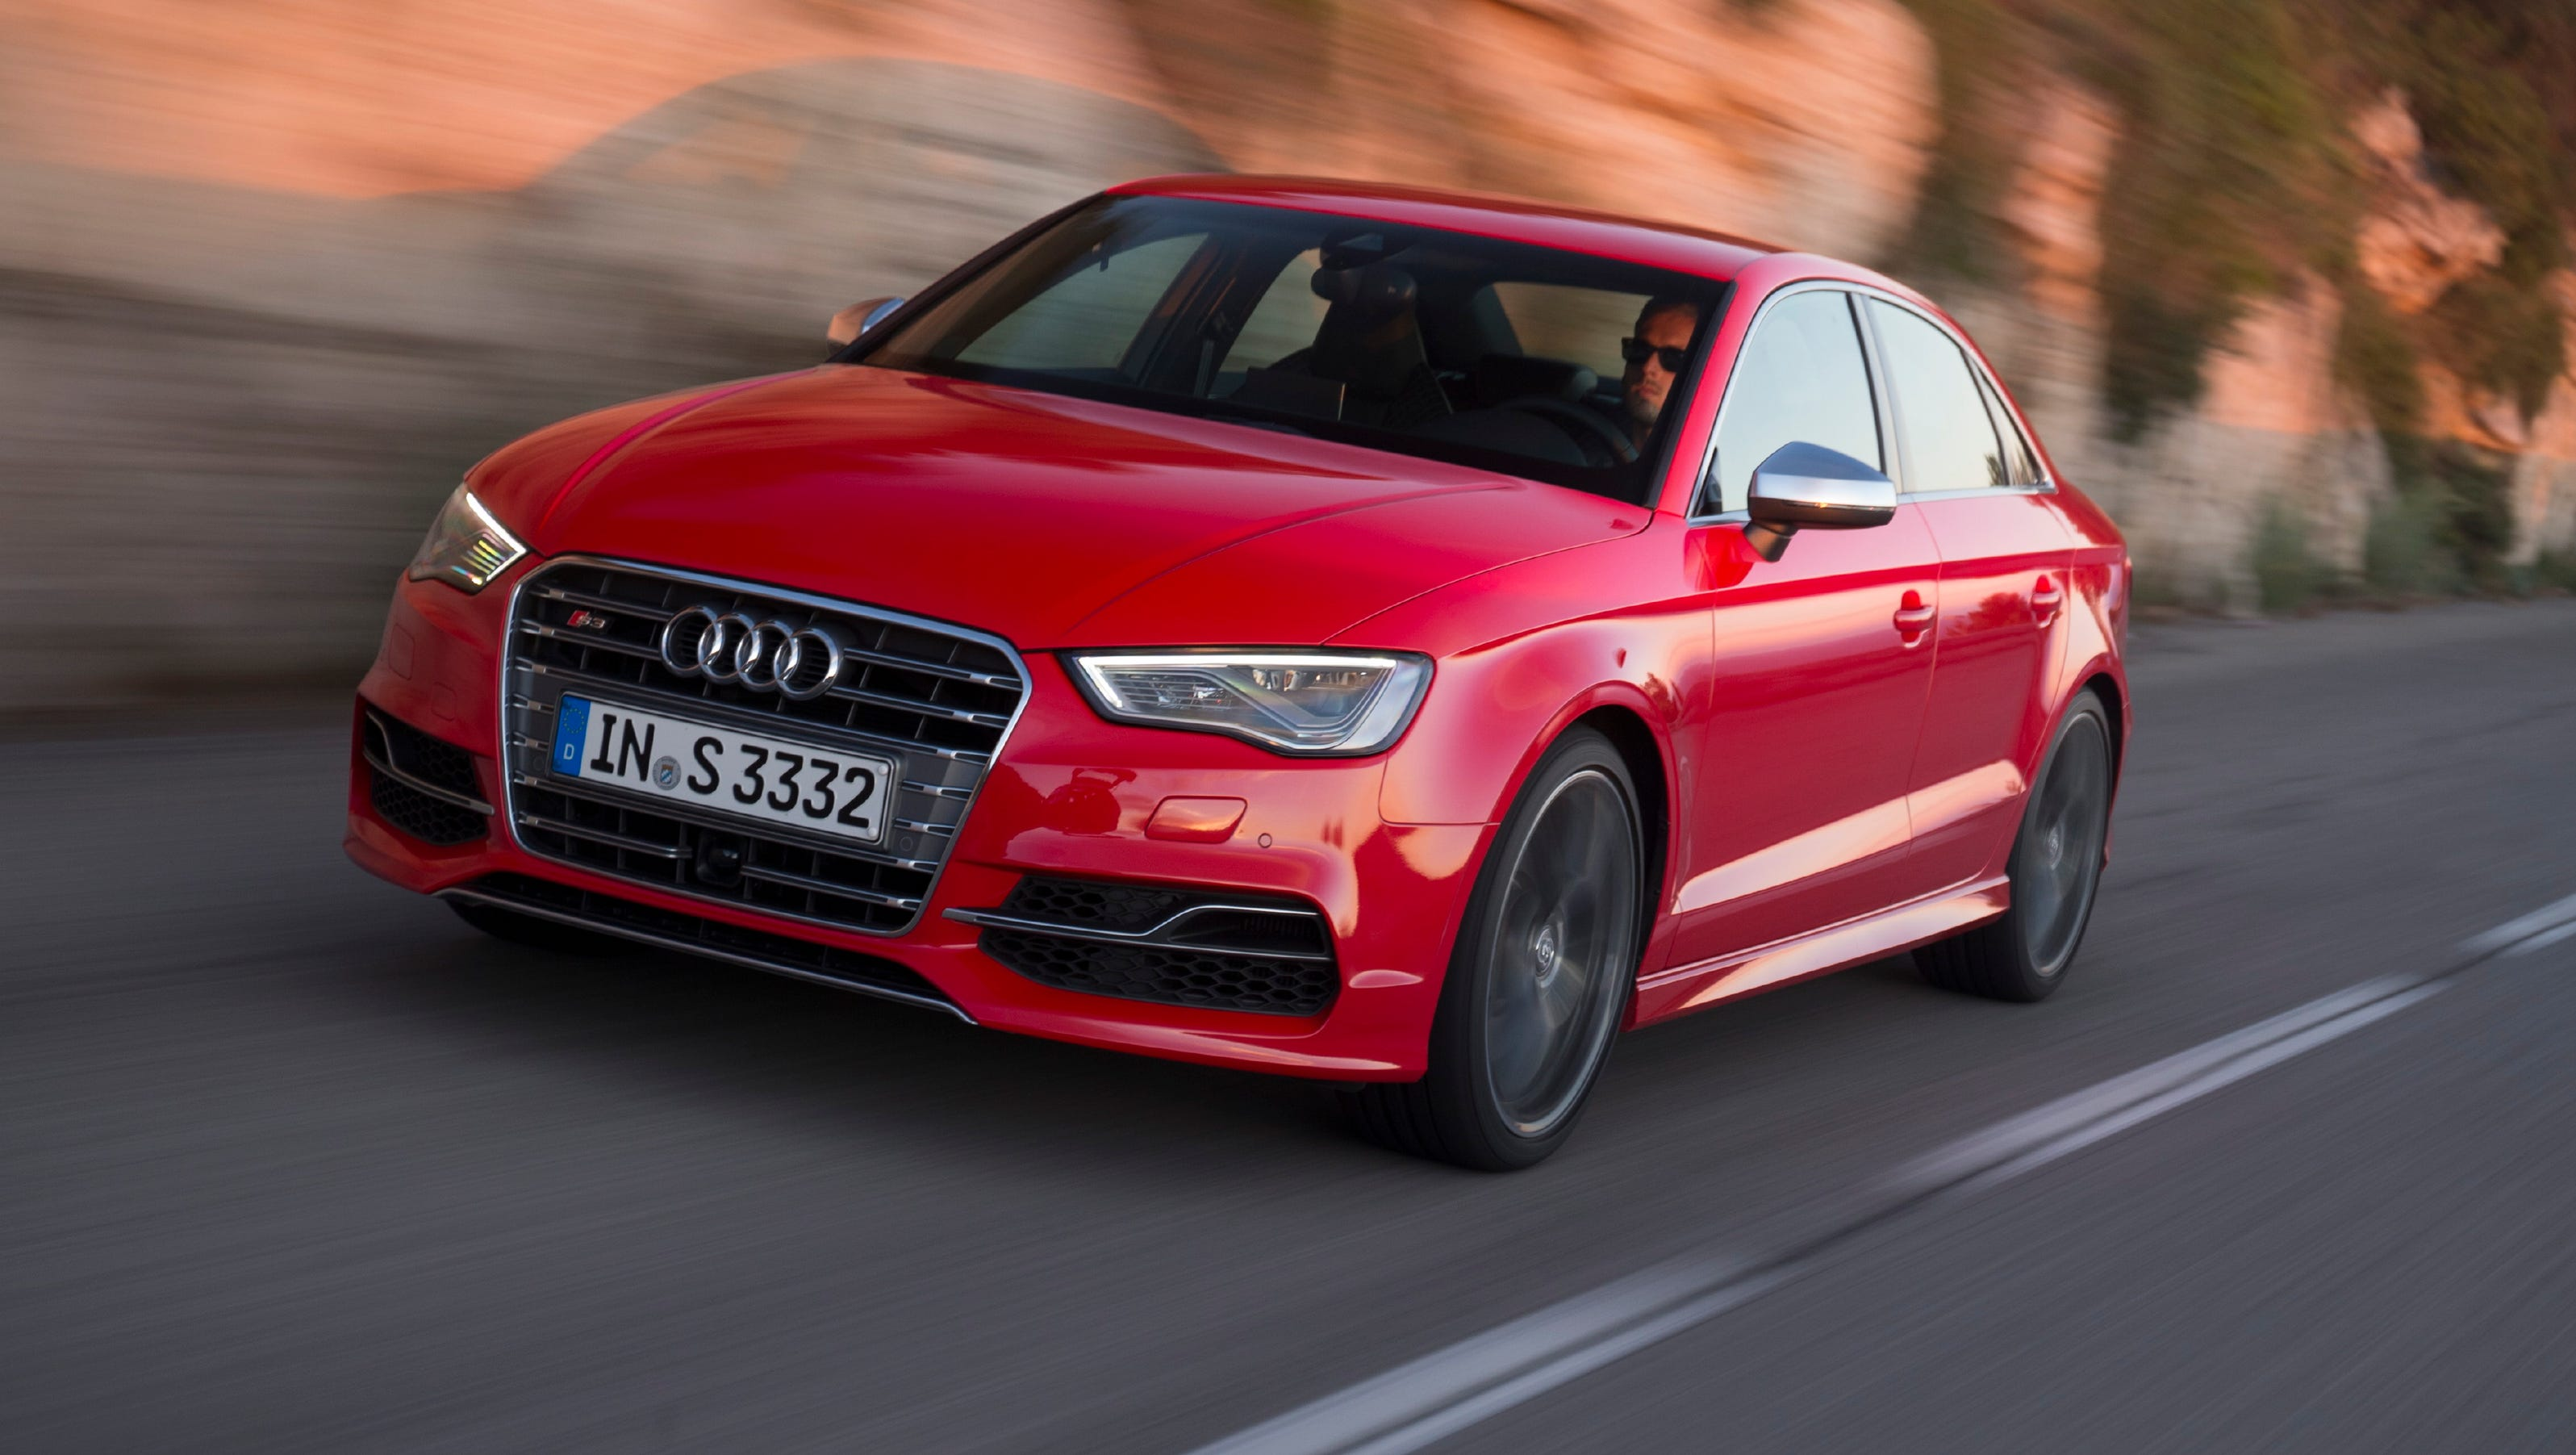 audi prices a3 diesel convertible s3 due this summer. Black Bedroom Furniture Sets. Home Design Ideas